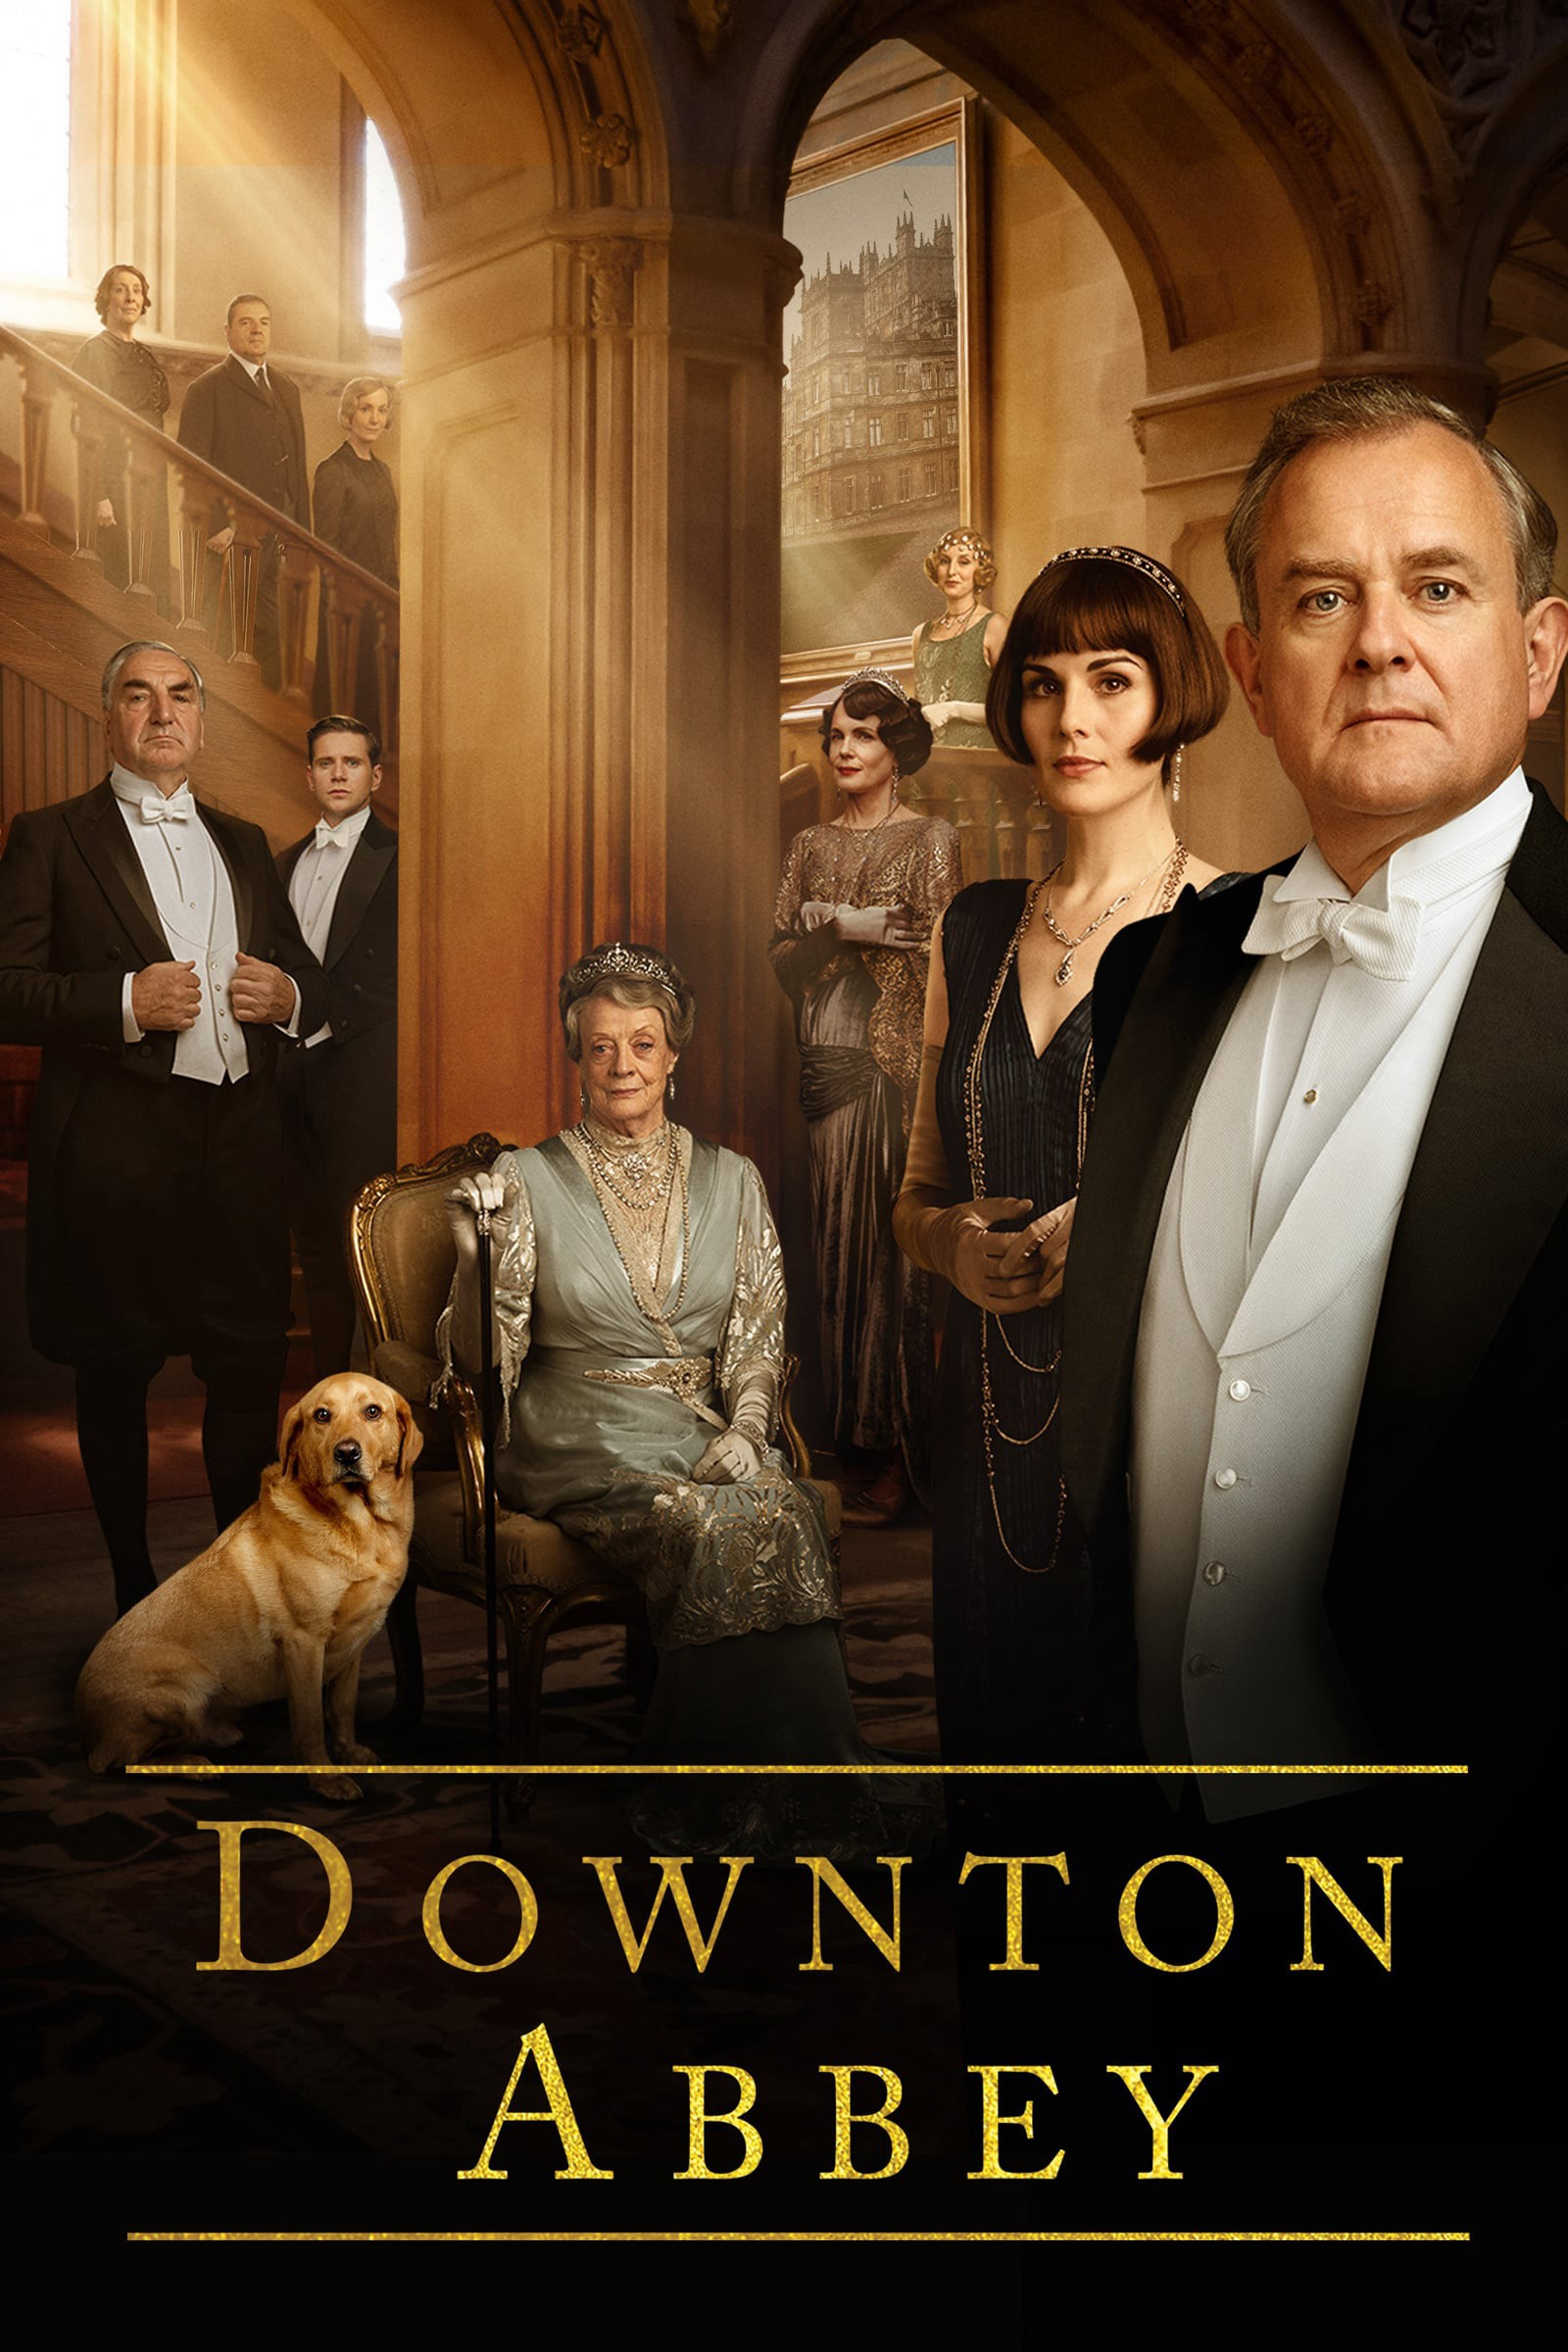 downton abbey christmas special 2011 watch online free